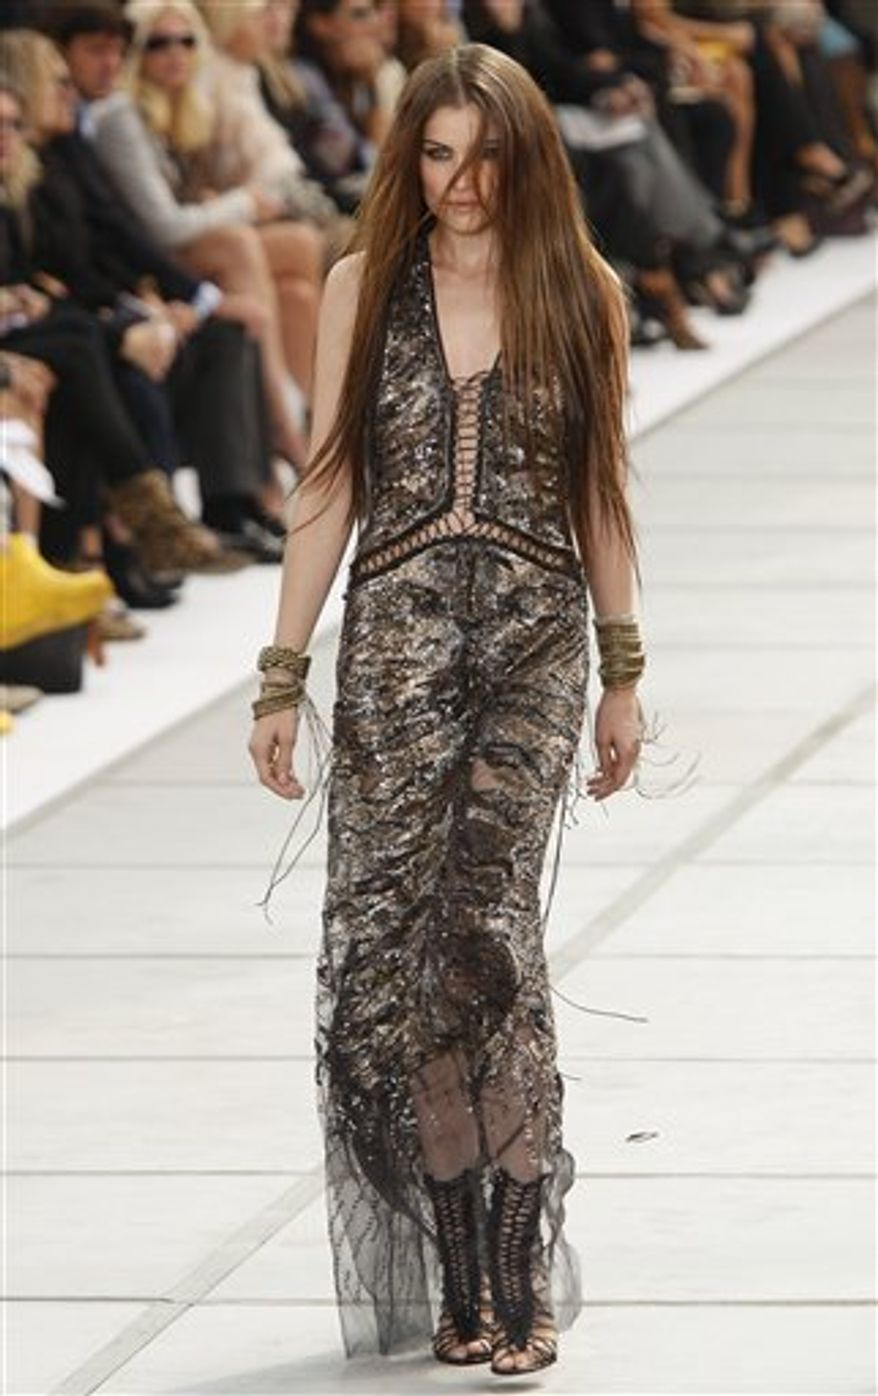 French supermodel and actress Laetitia Casta shows a creation part of the Roberto Cavalli Spring-Summer 2011 fashion collection, during the fashion week in Milan, Italy, Monday, Sept. 27, 2010. (AP Photo/Antonio Calanni)